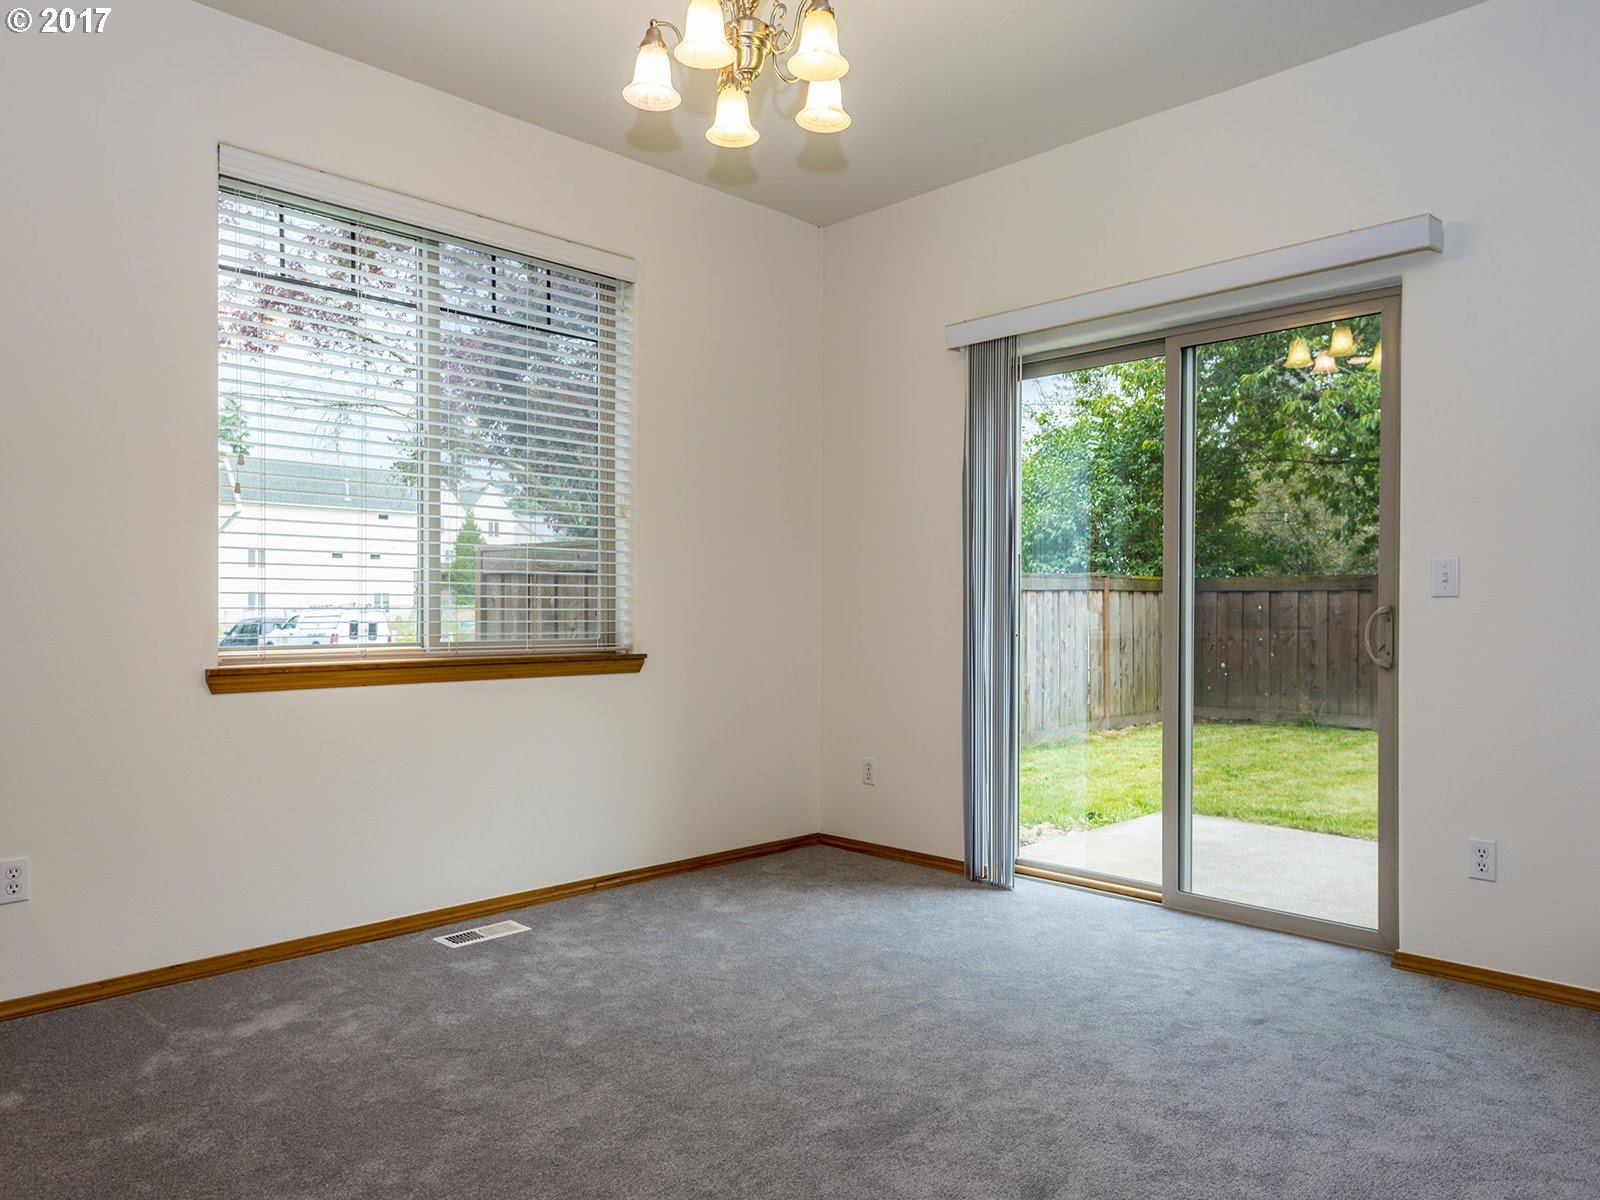 14809 NE COUCH ST Portland, OR 97230 - MLS #: 17588591